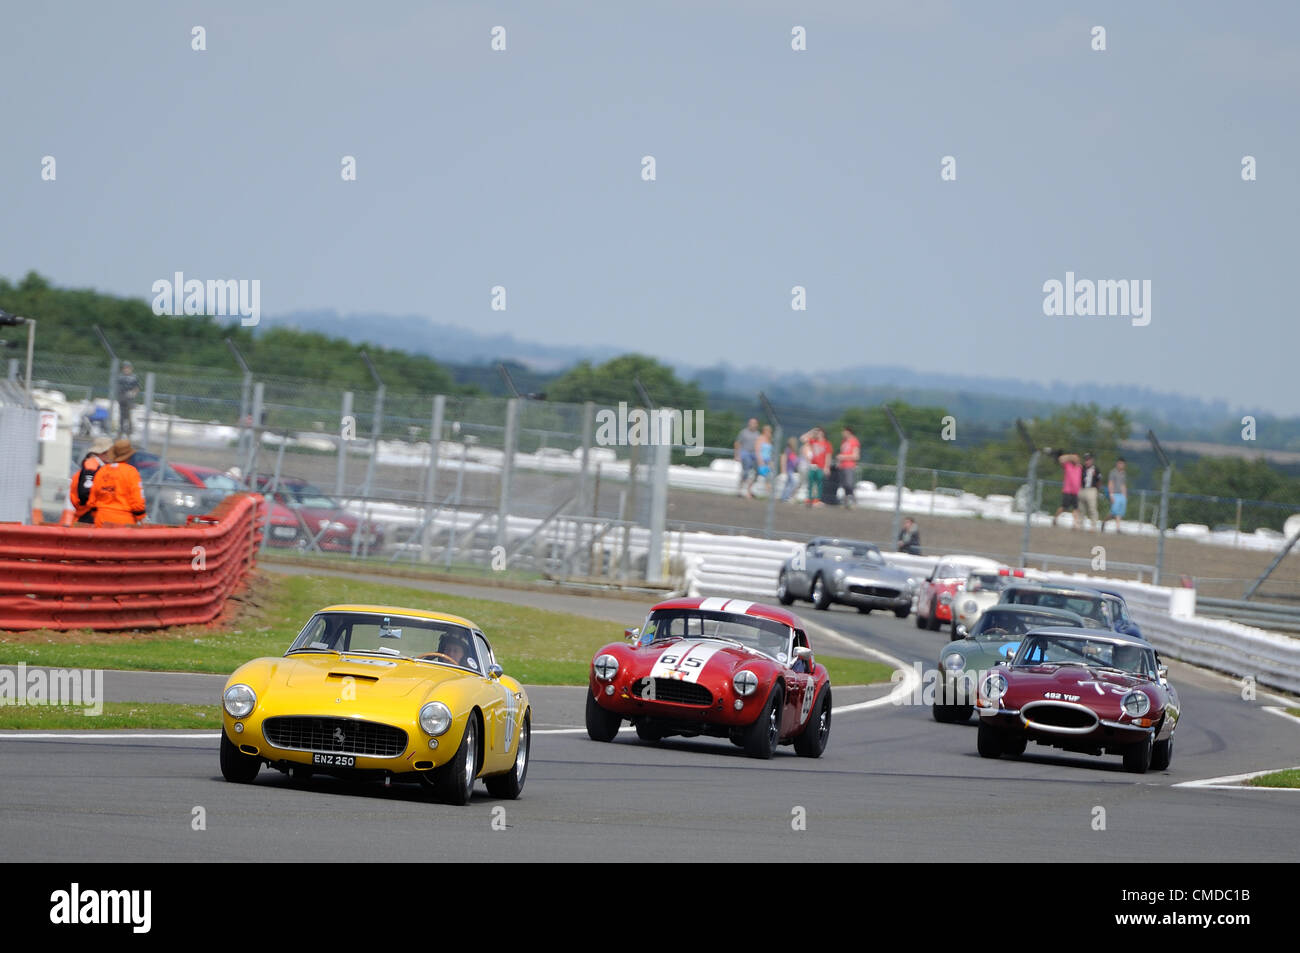 22nd July 2012, Silverstone, UK.  The cars leave the pit lane to start their formation lap before the Royal Automobile - Stock Image